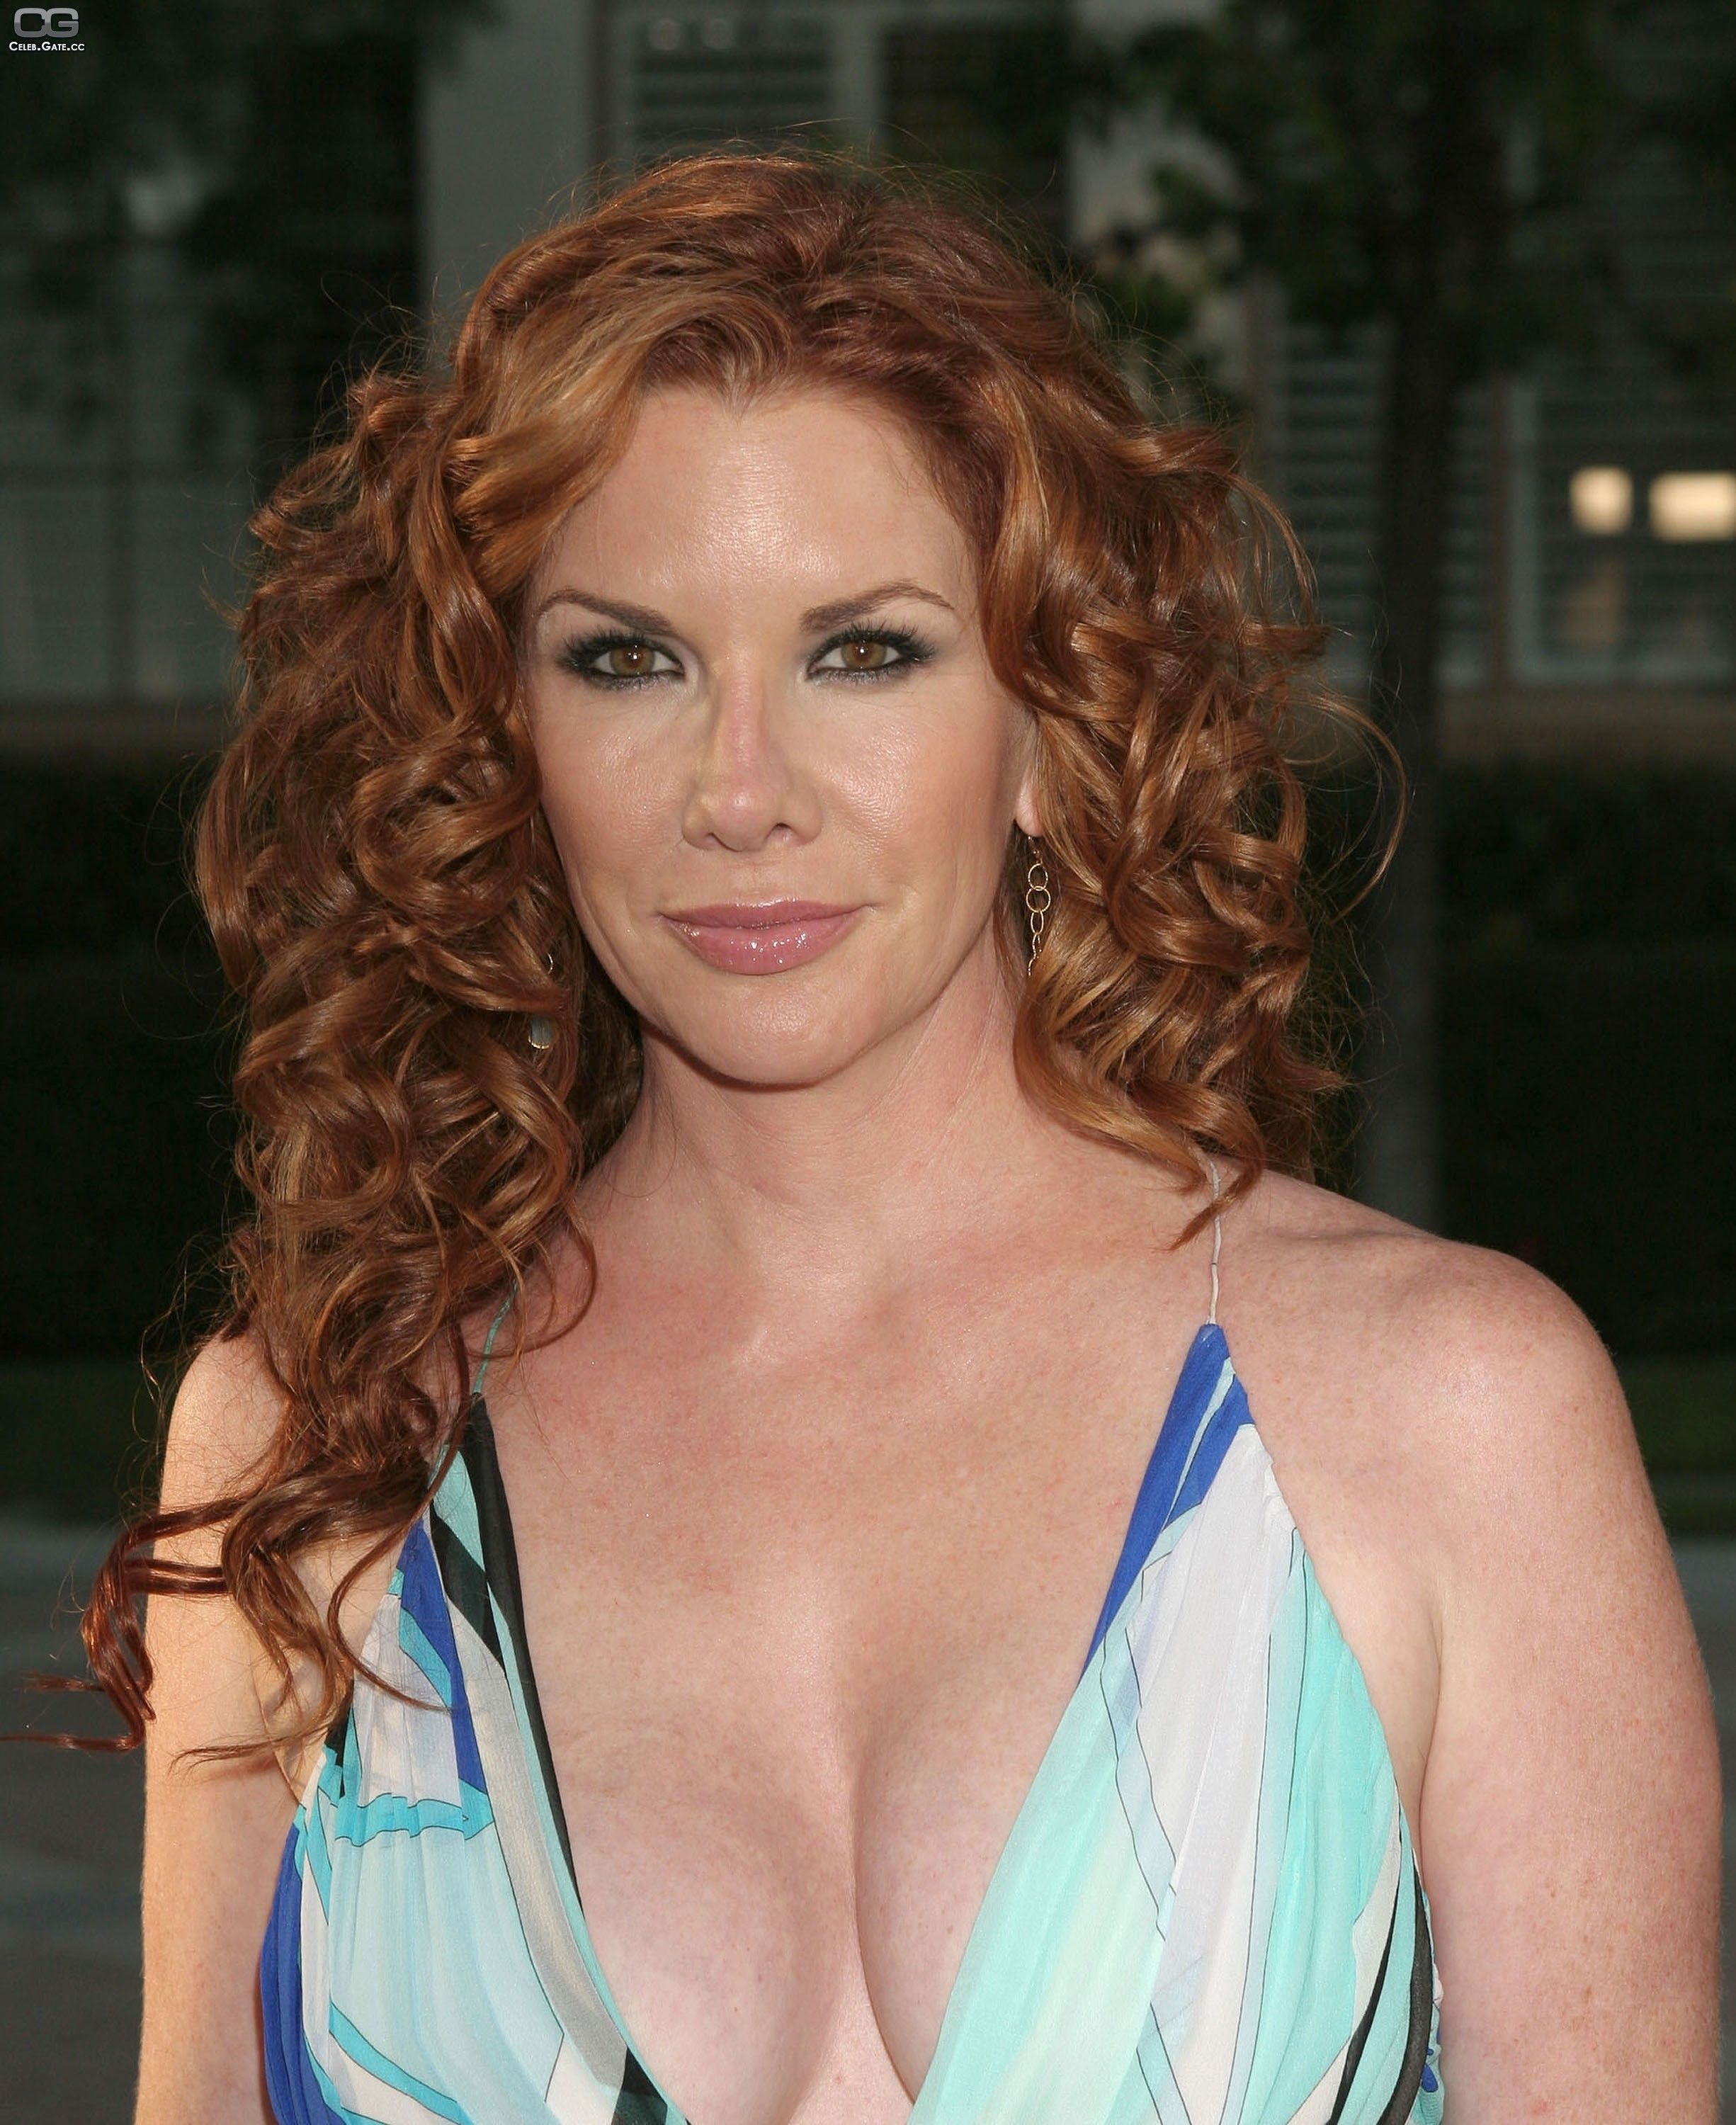 Really. And Melissa gilbert ever nude